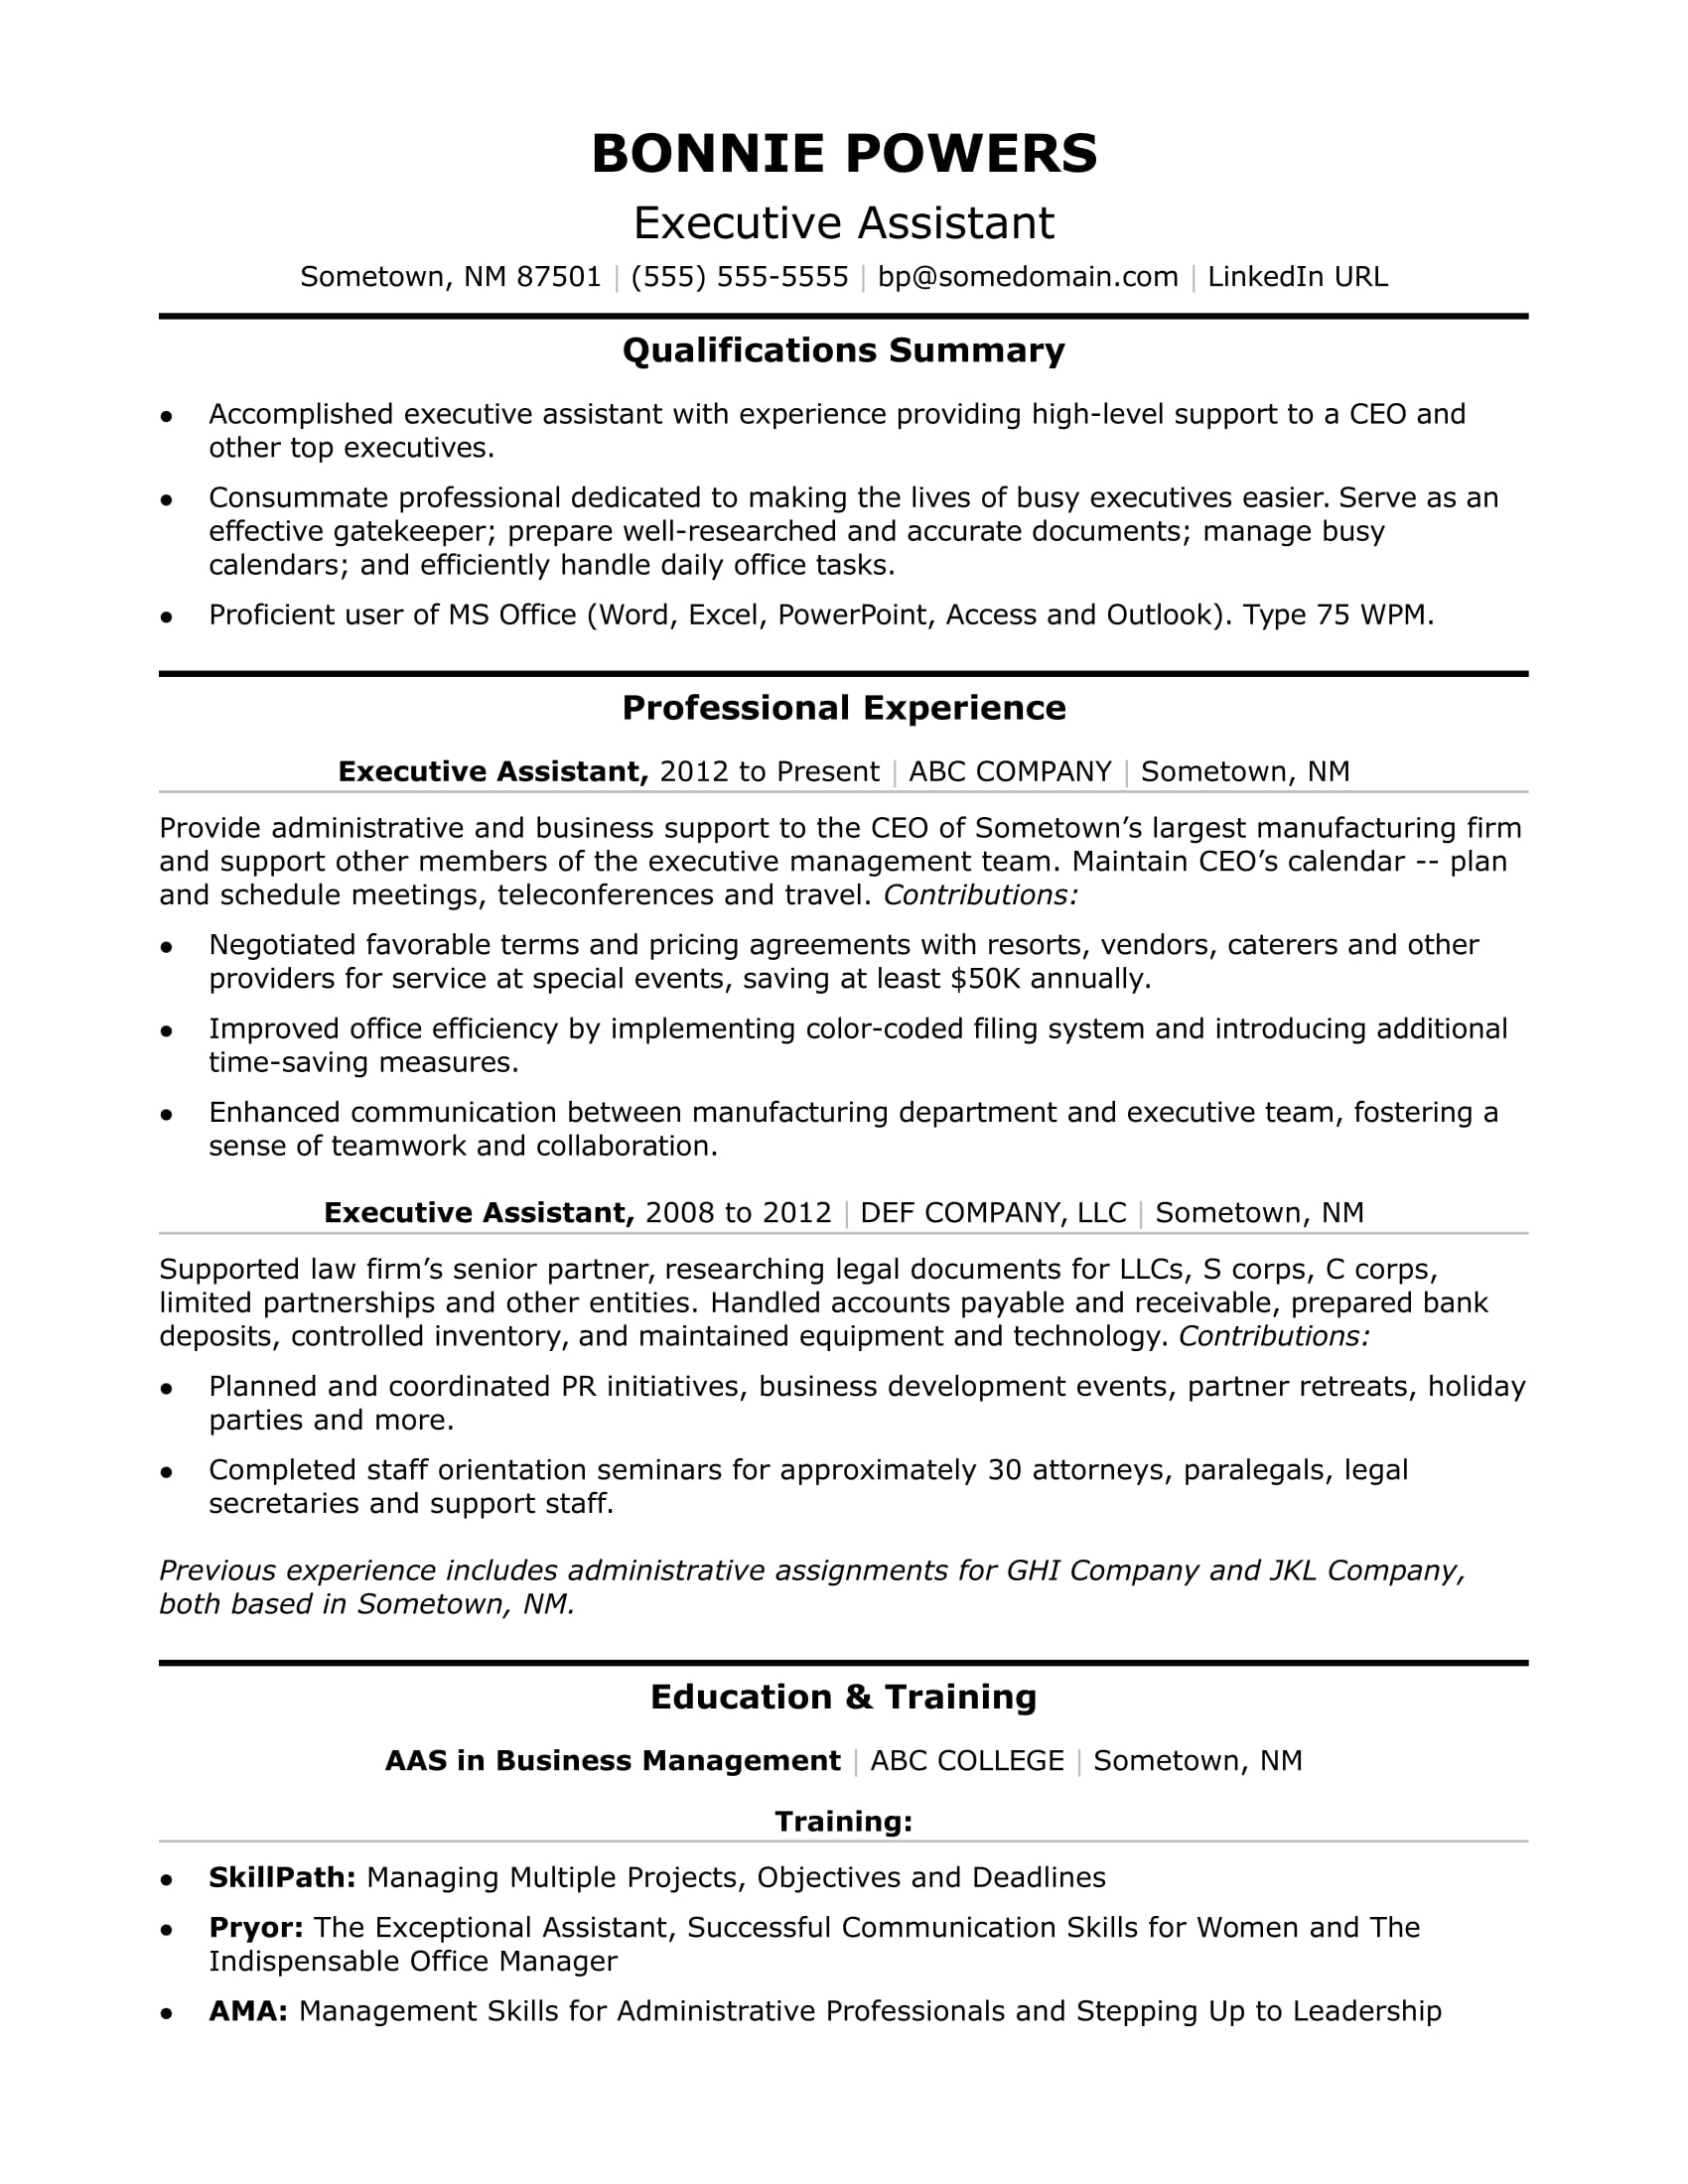 executive administrative assistant resume sample monster template microsoft word Resume Administrative Assistant Resume Template Microsoft Word Free